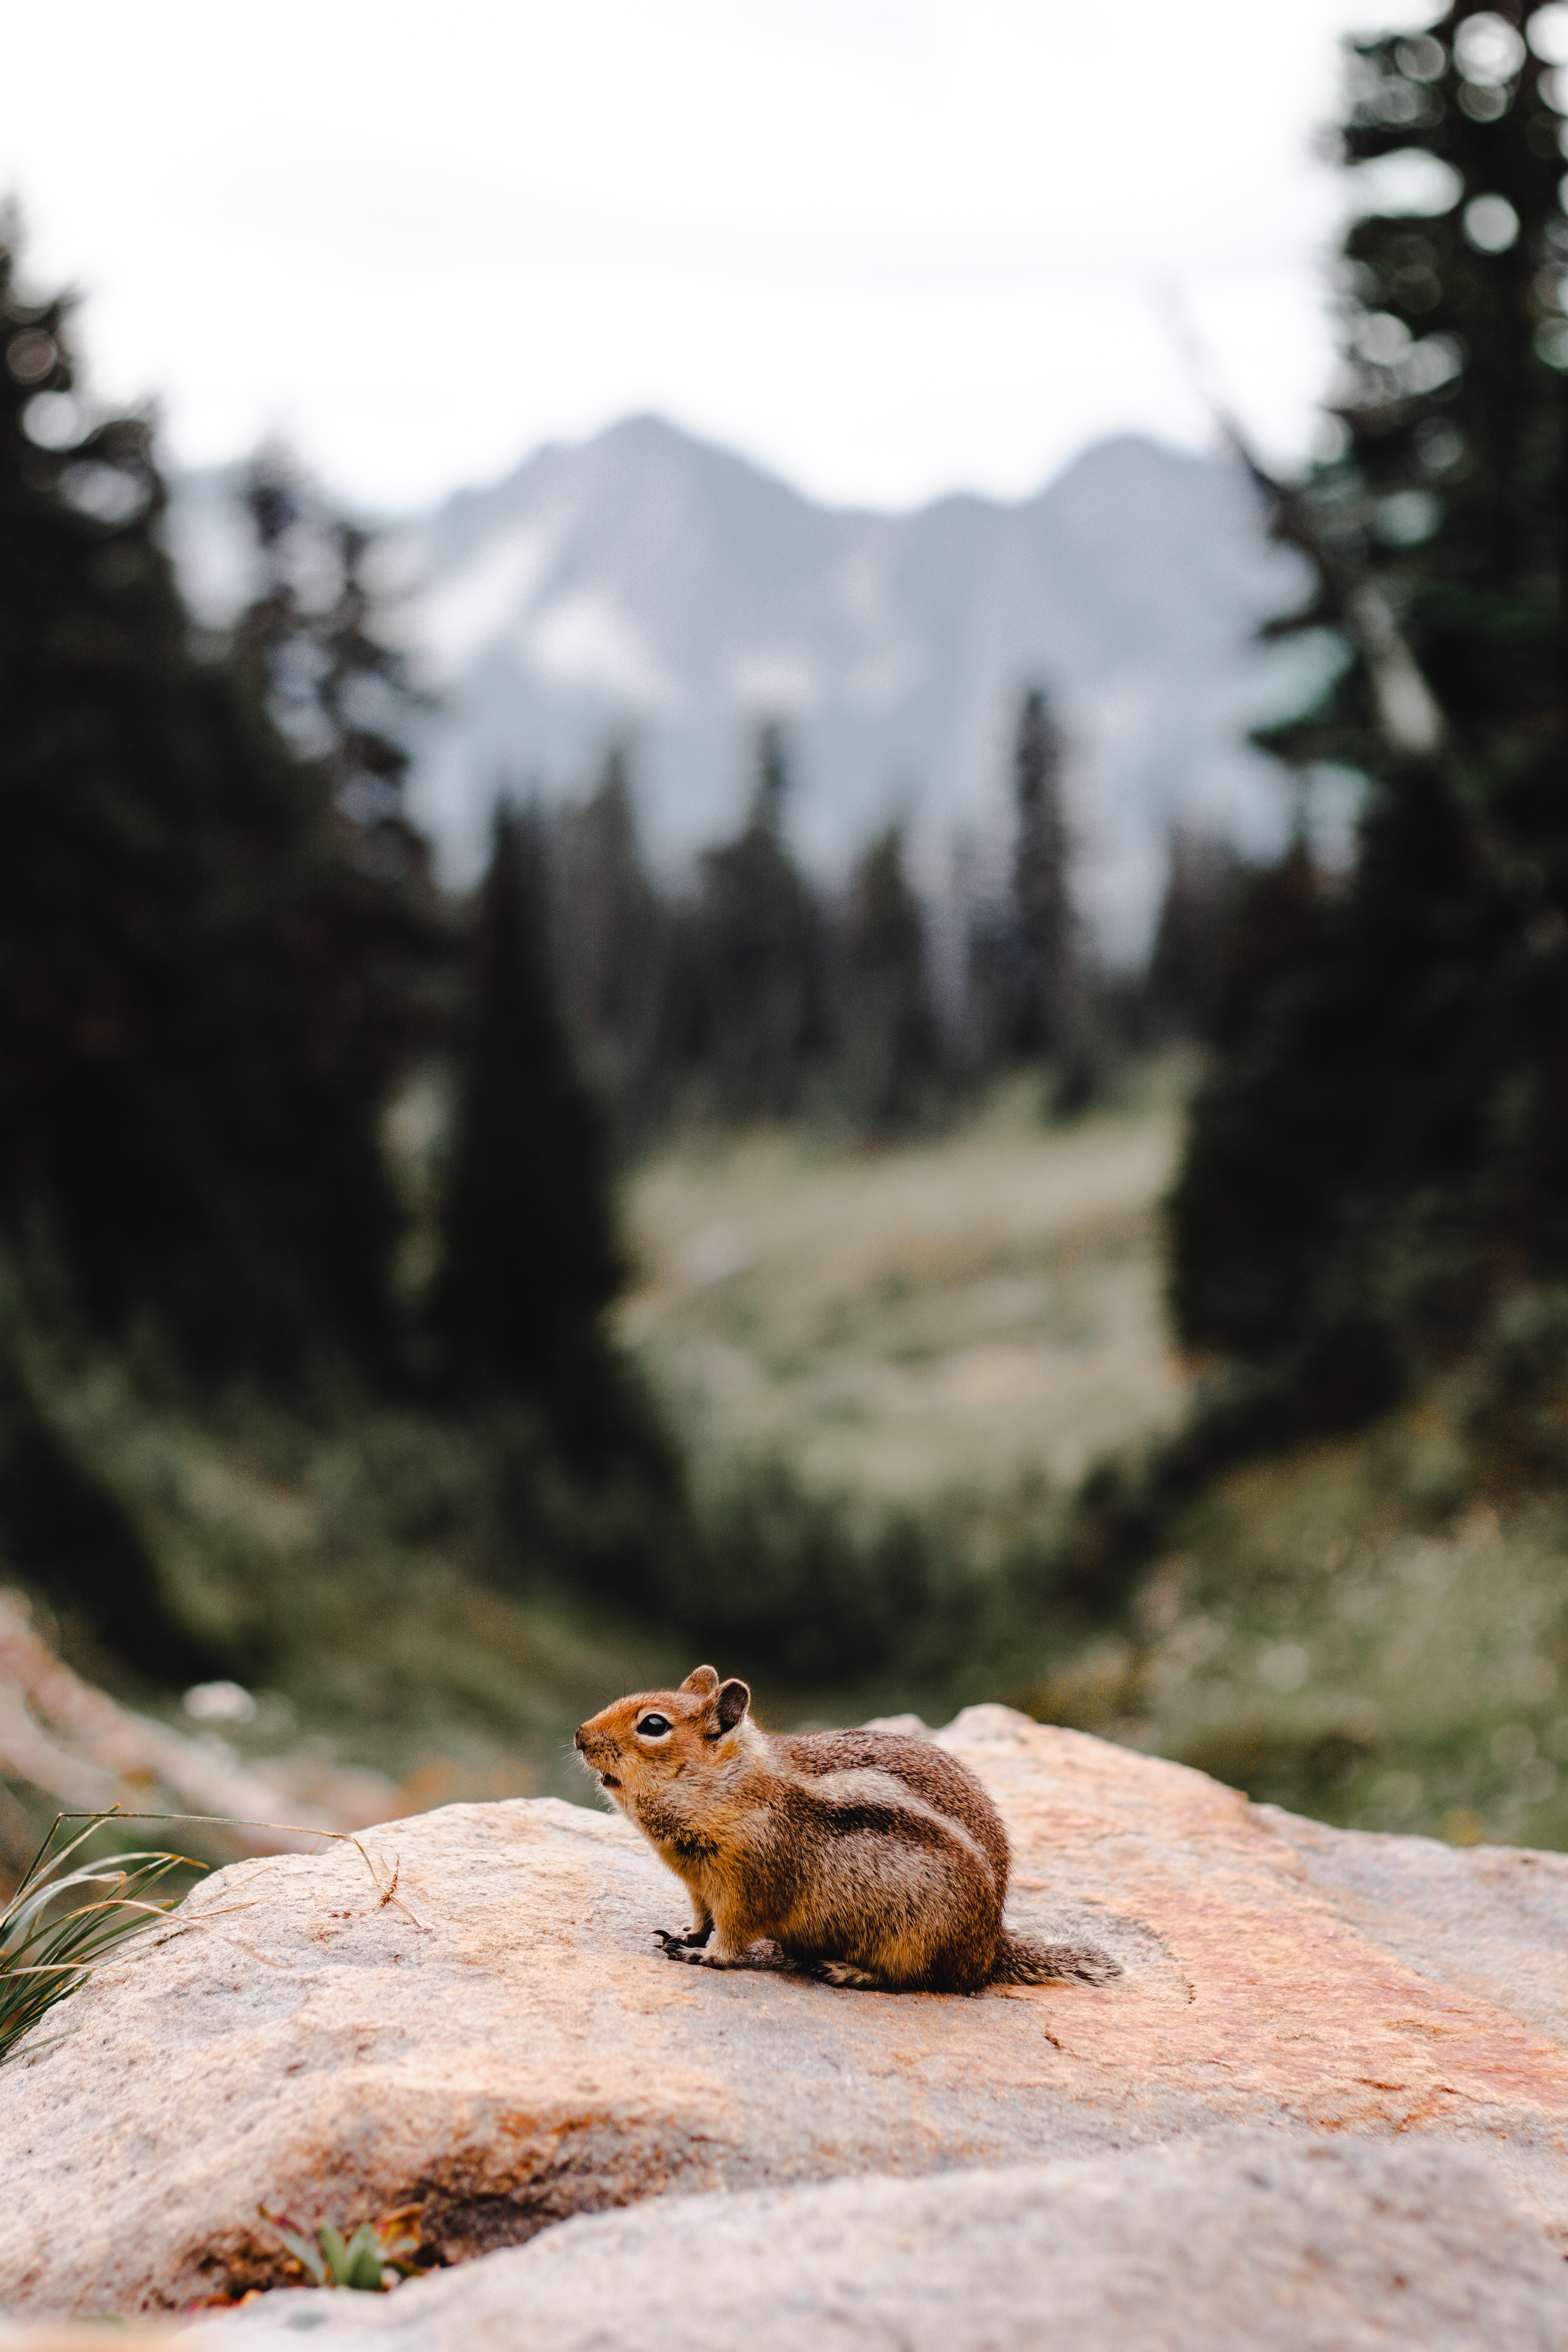 70248 download wallpaper Animals, Chipmunk, Rodent, Fluffy, Rock, Stone screensavers and pictures for free